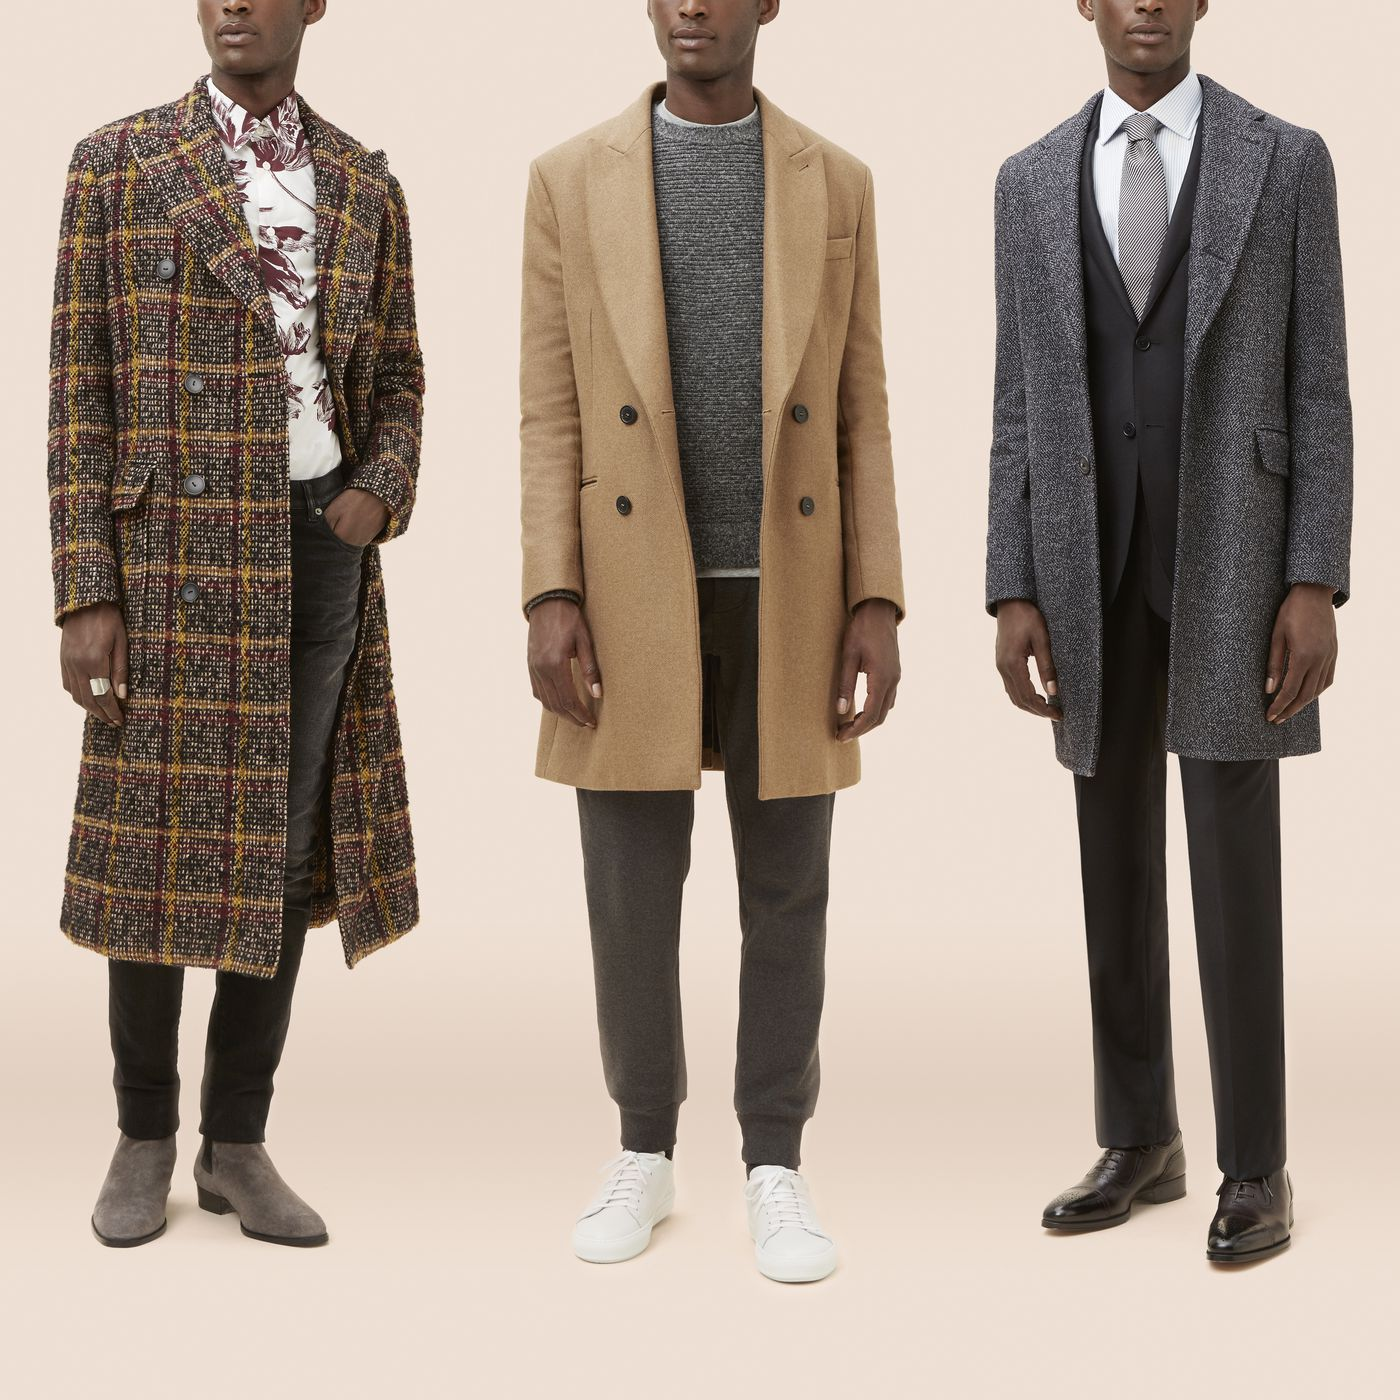 16905f98944a The Most Essential Online Menswear Shops - Racked